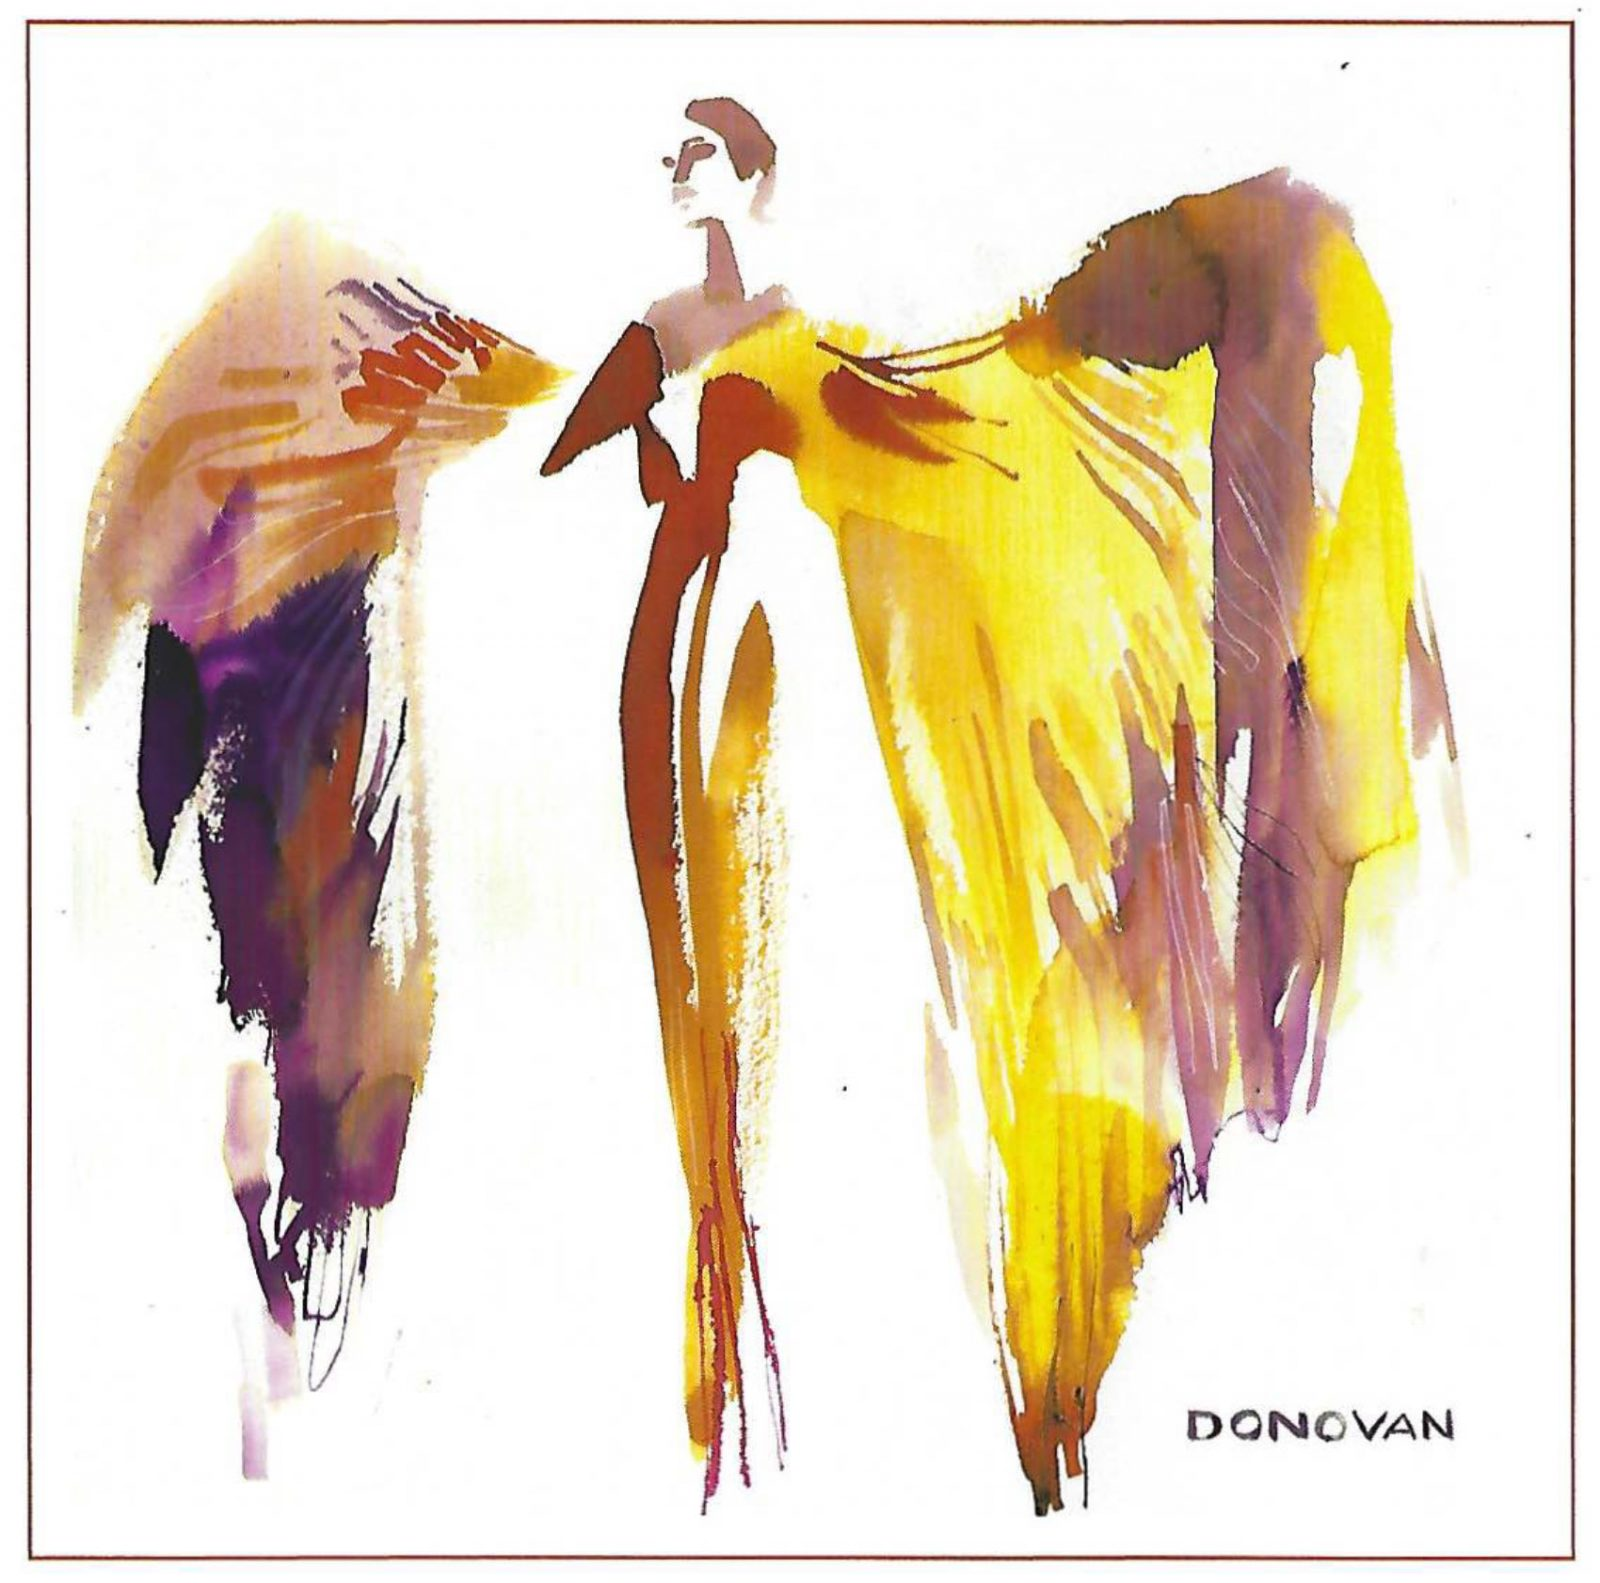 FASHION ILLUSTRATOR, DIOR, DIOR ARTIST IN RESIDENCE, COUTURE, FASHION, ART CLASS, LONDON FINE ART STUDIOS, UNIQUE NIGHTS OUT, LONDON NIGHTS, BIL DONOVAN, SKETCH NIGHT, MASTERCLASS